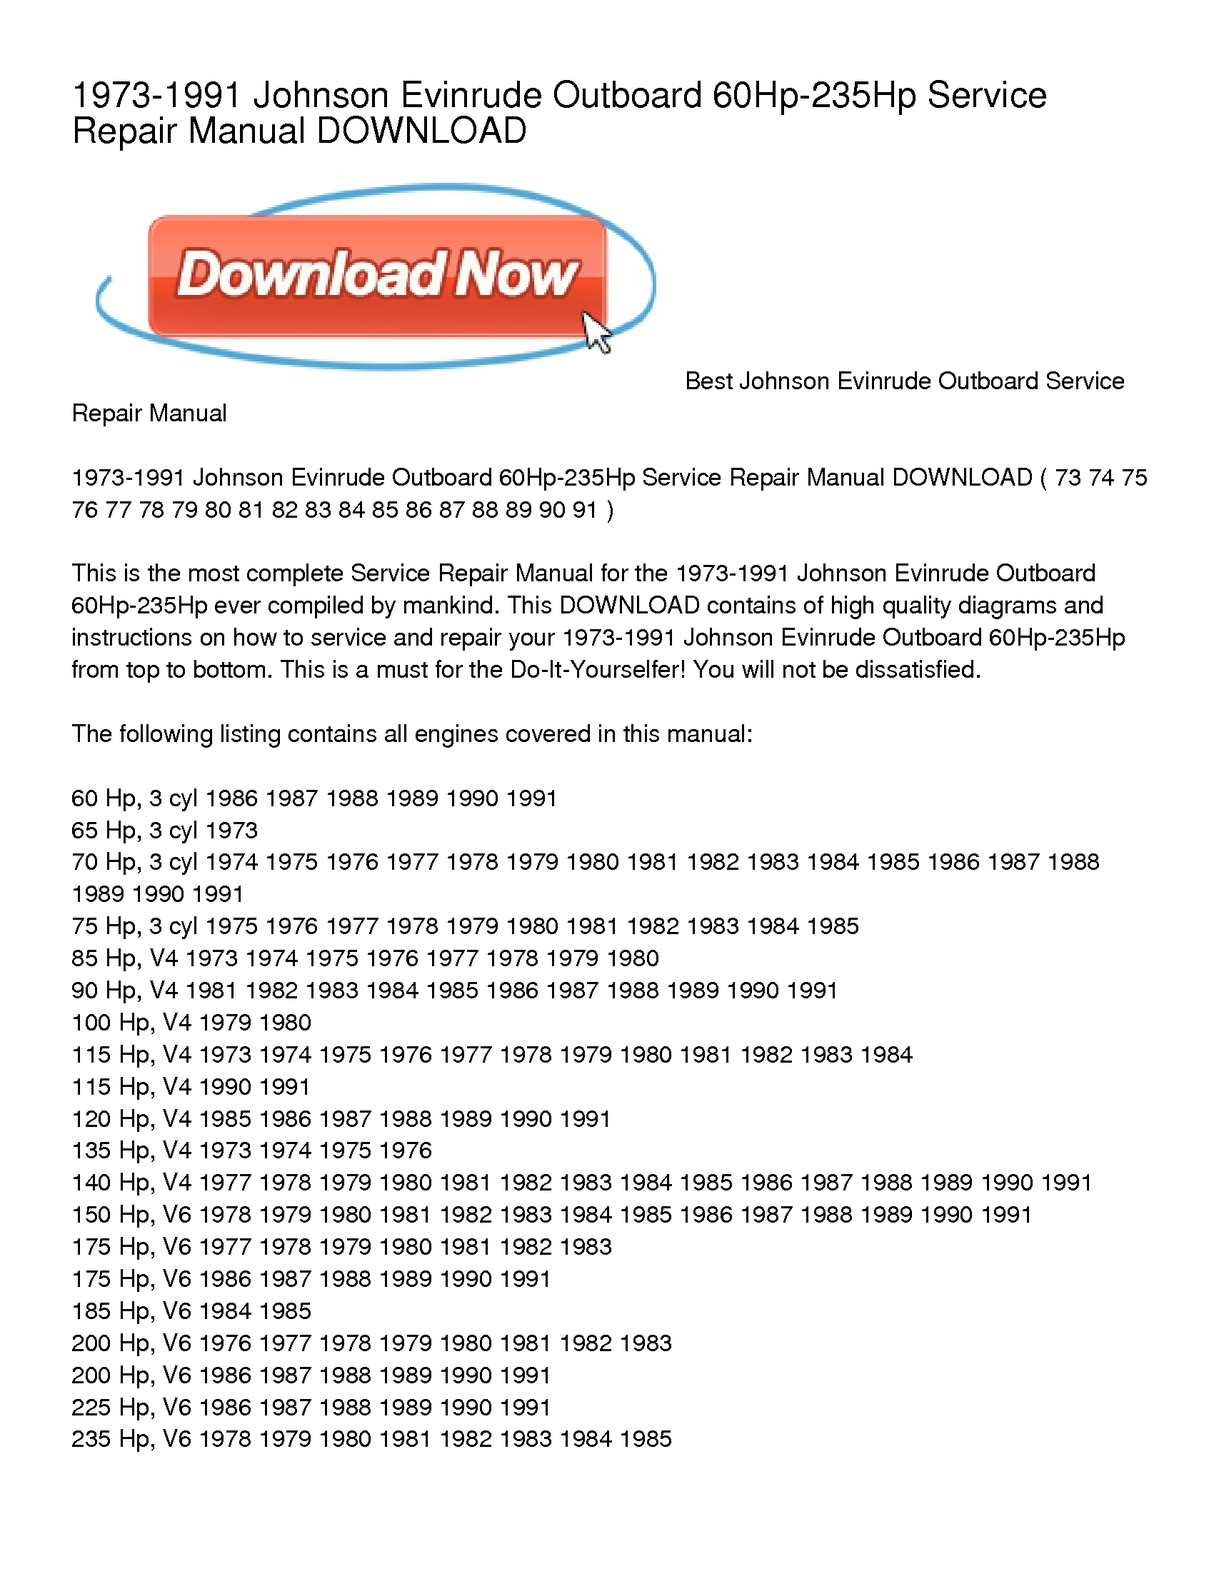 Calameo 1973 1991 Johnson Evinrude Outboard 60hp 235hp Service Repair Manual Download